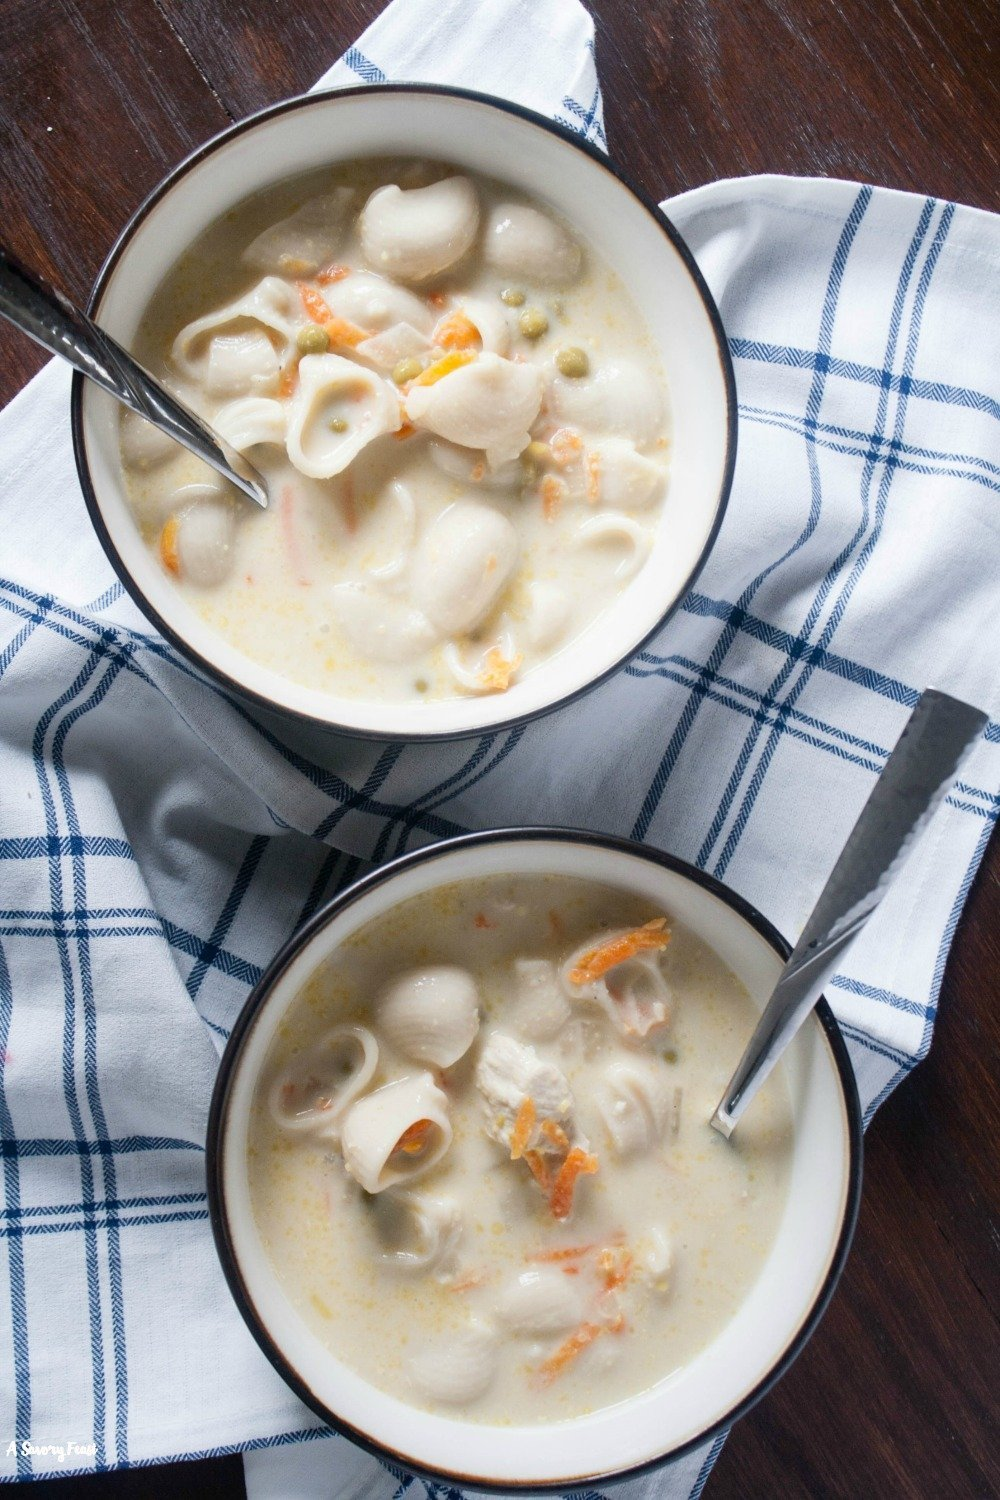 Warm up with this Creamy Chicken Noodle Soup! A flavorful chicken soup with a bit of heavy cream added in. Loaded up with lots of veggies and noodles for a hearty meal.